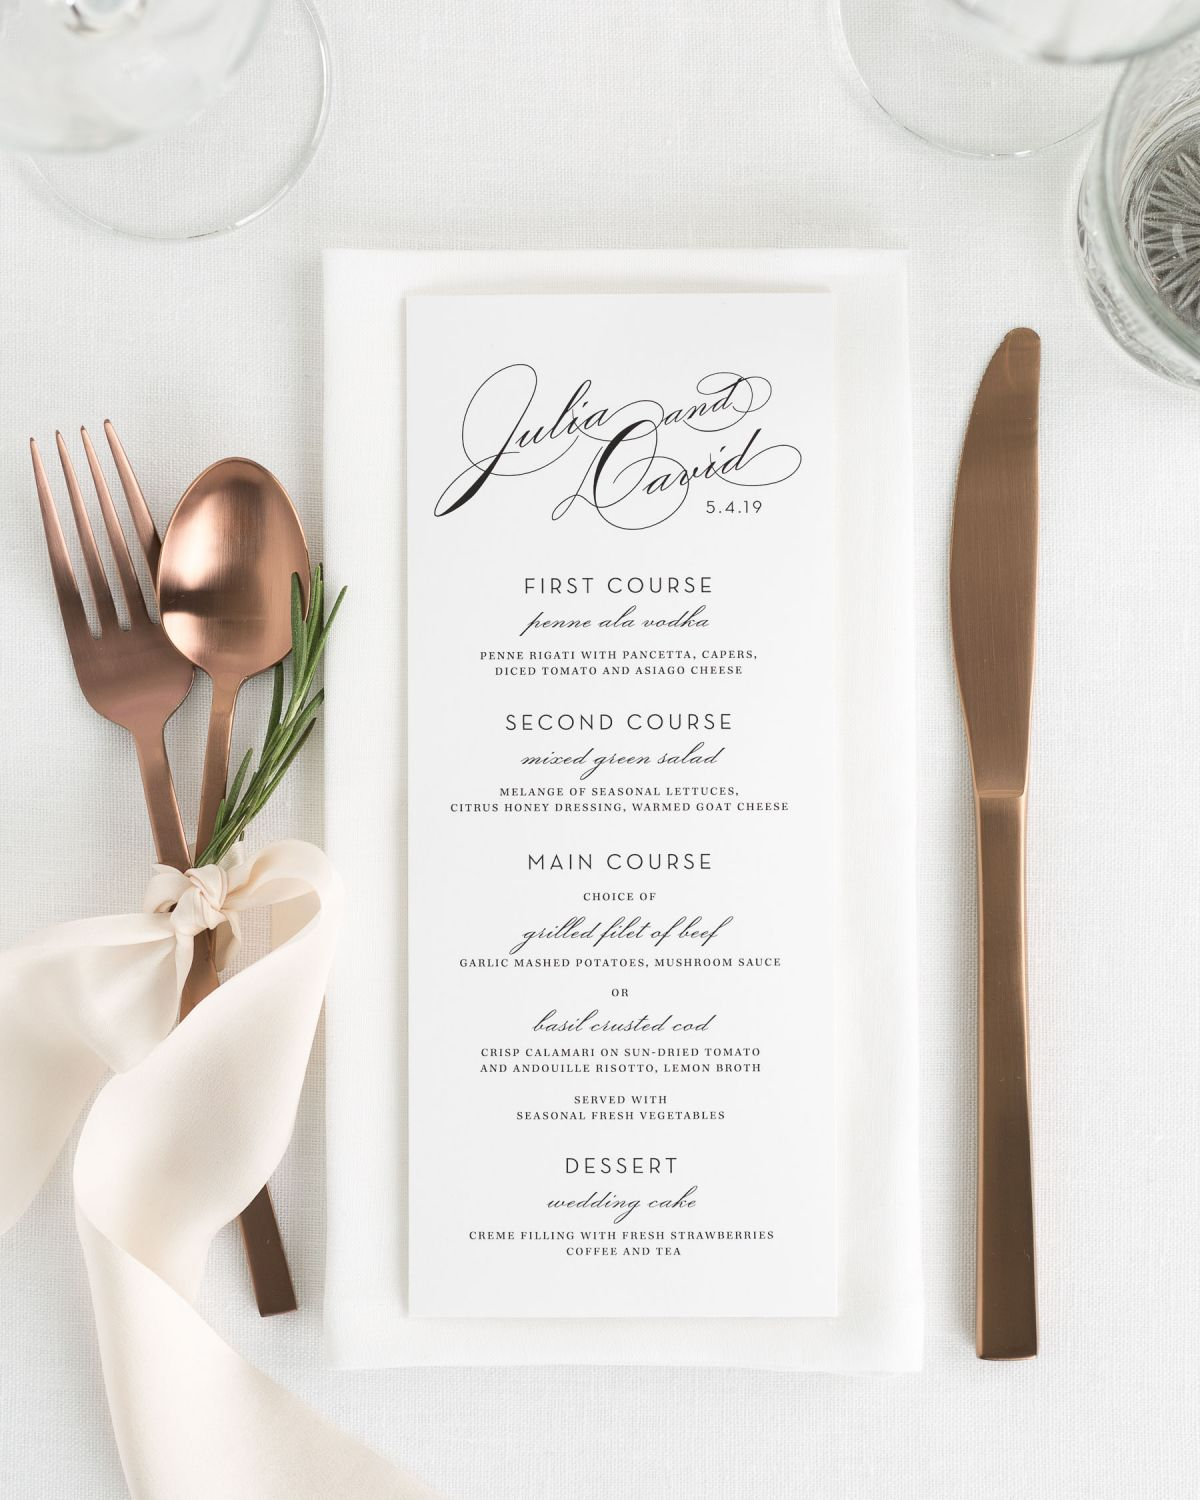 Vintage Wedding Menus for a Reception or Party